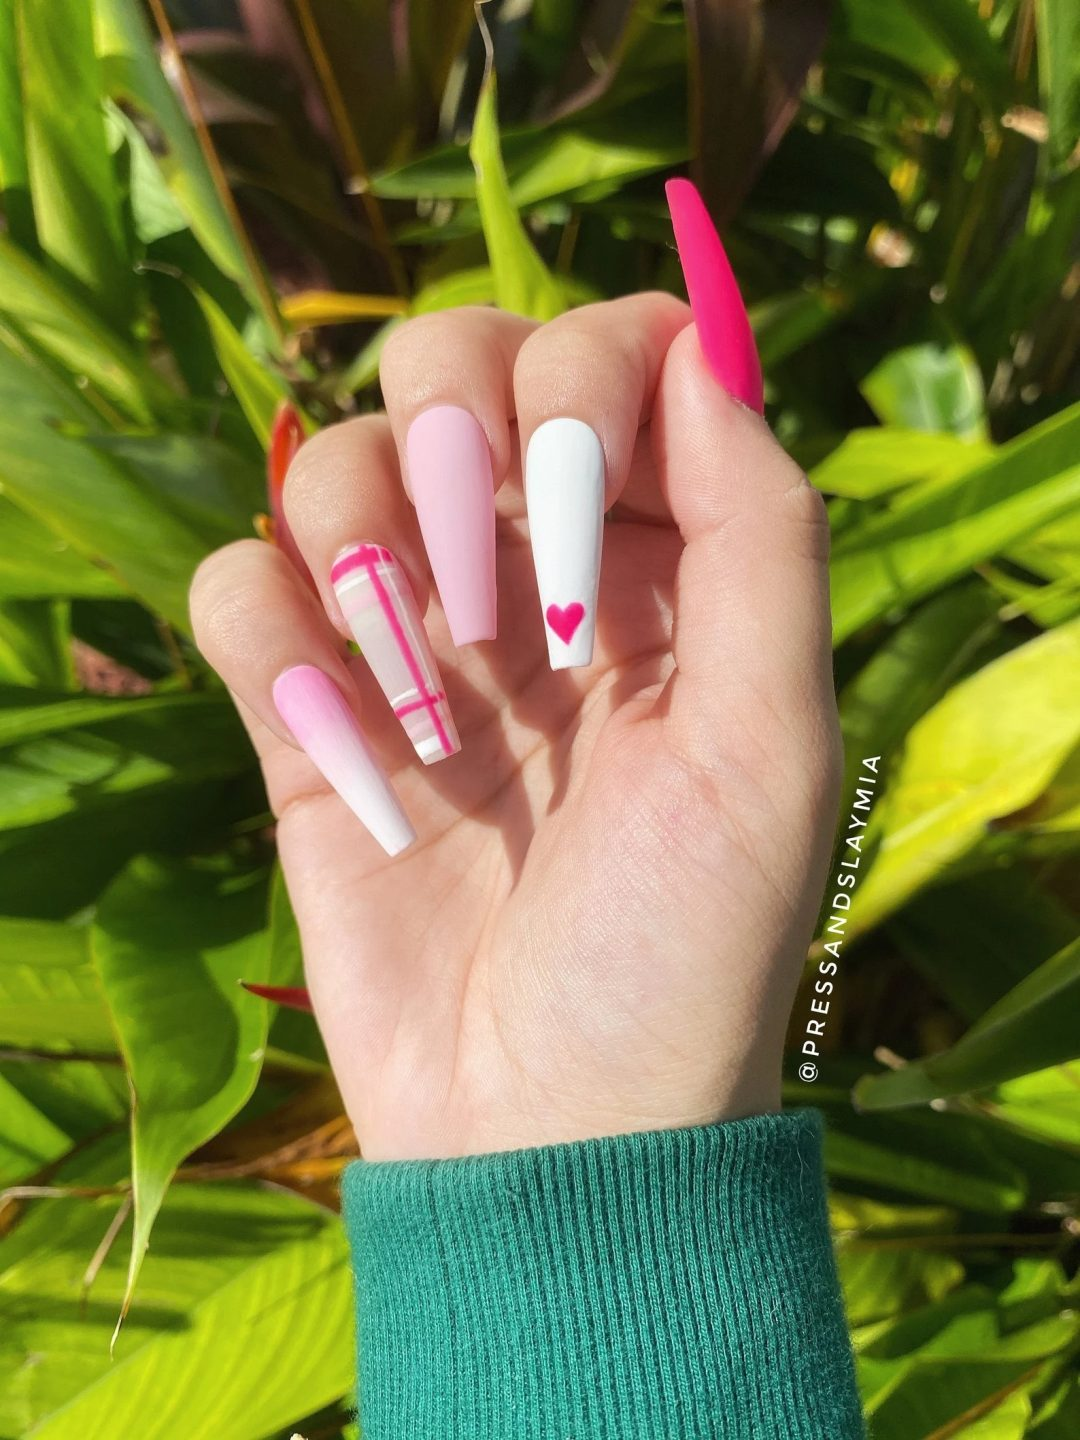 Soft pink and white plaid nails with heart